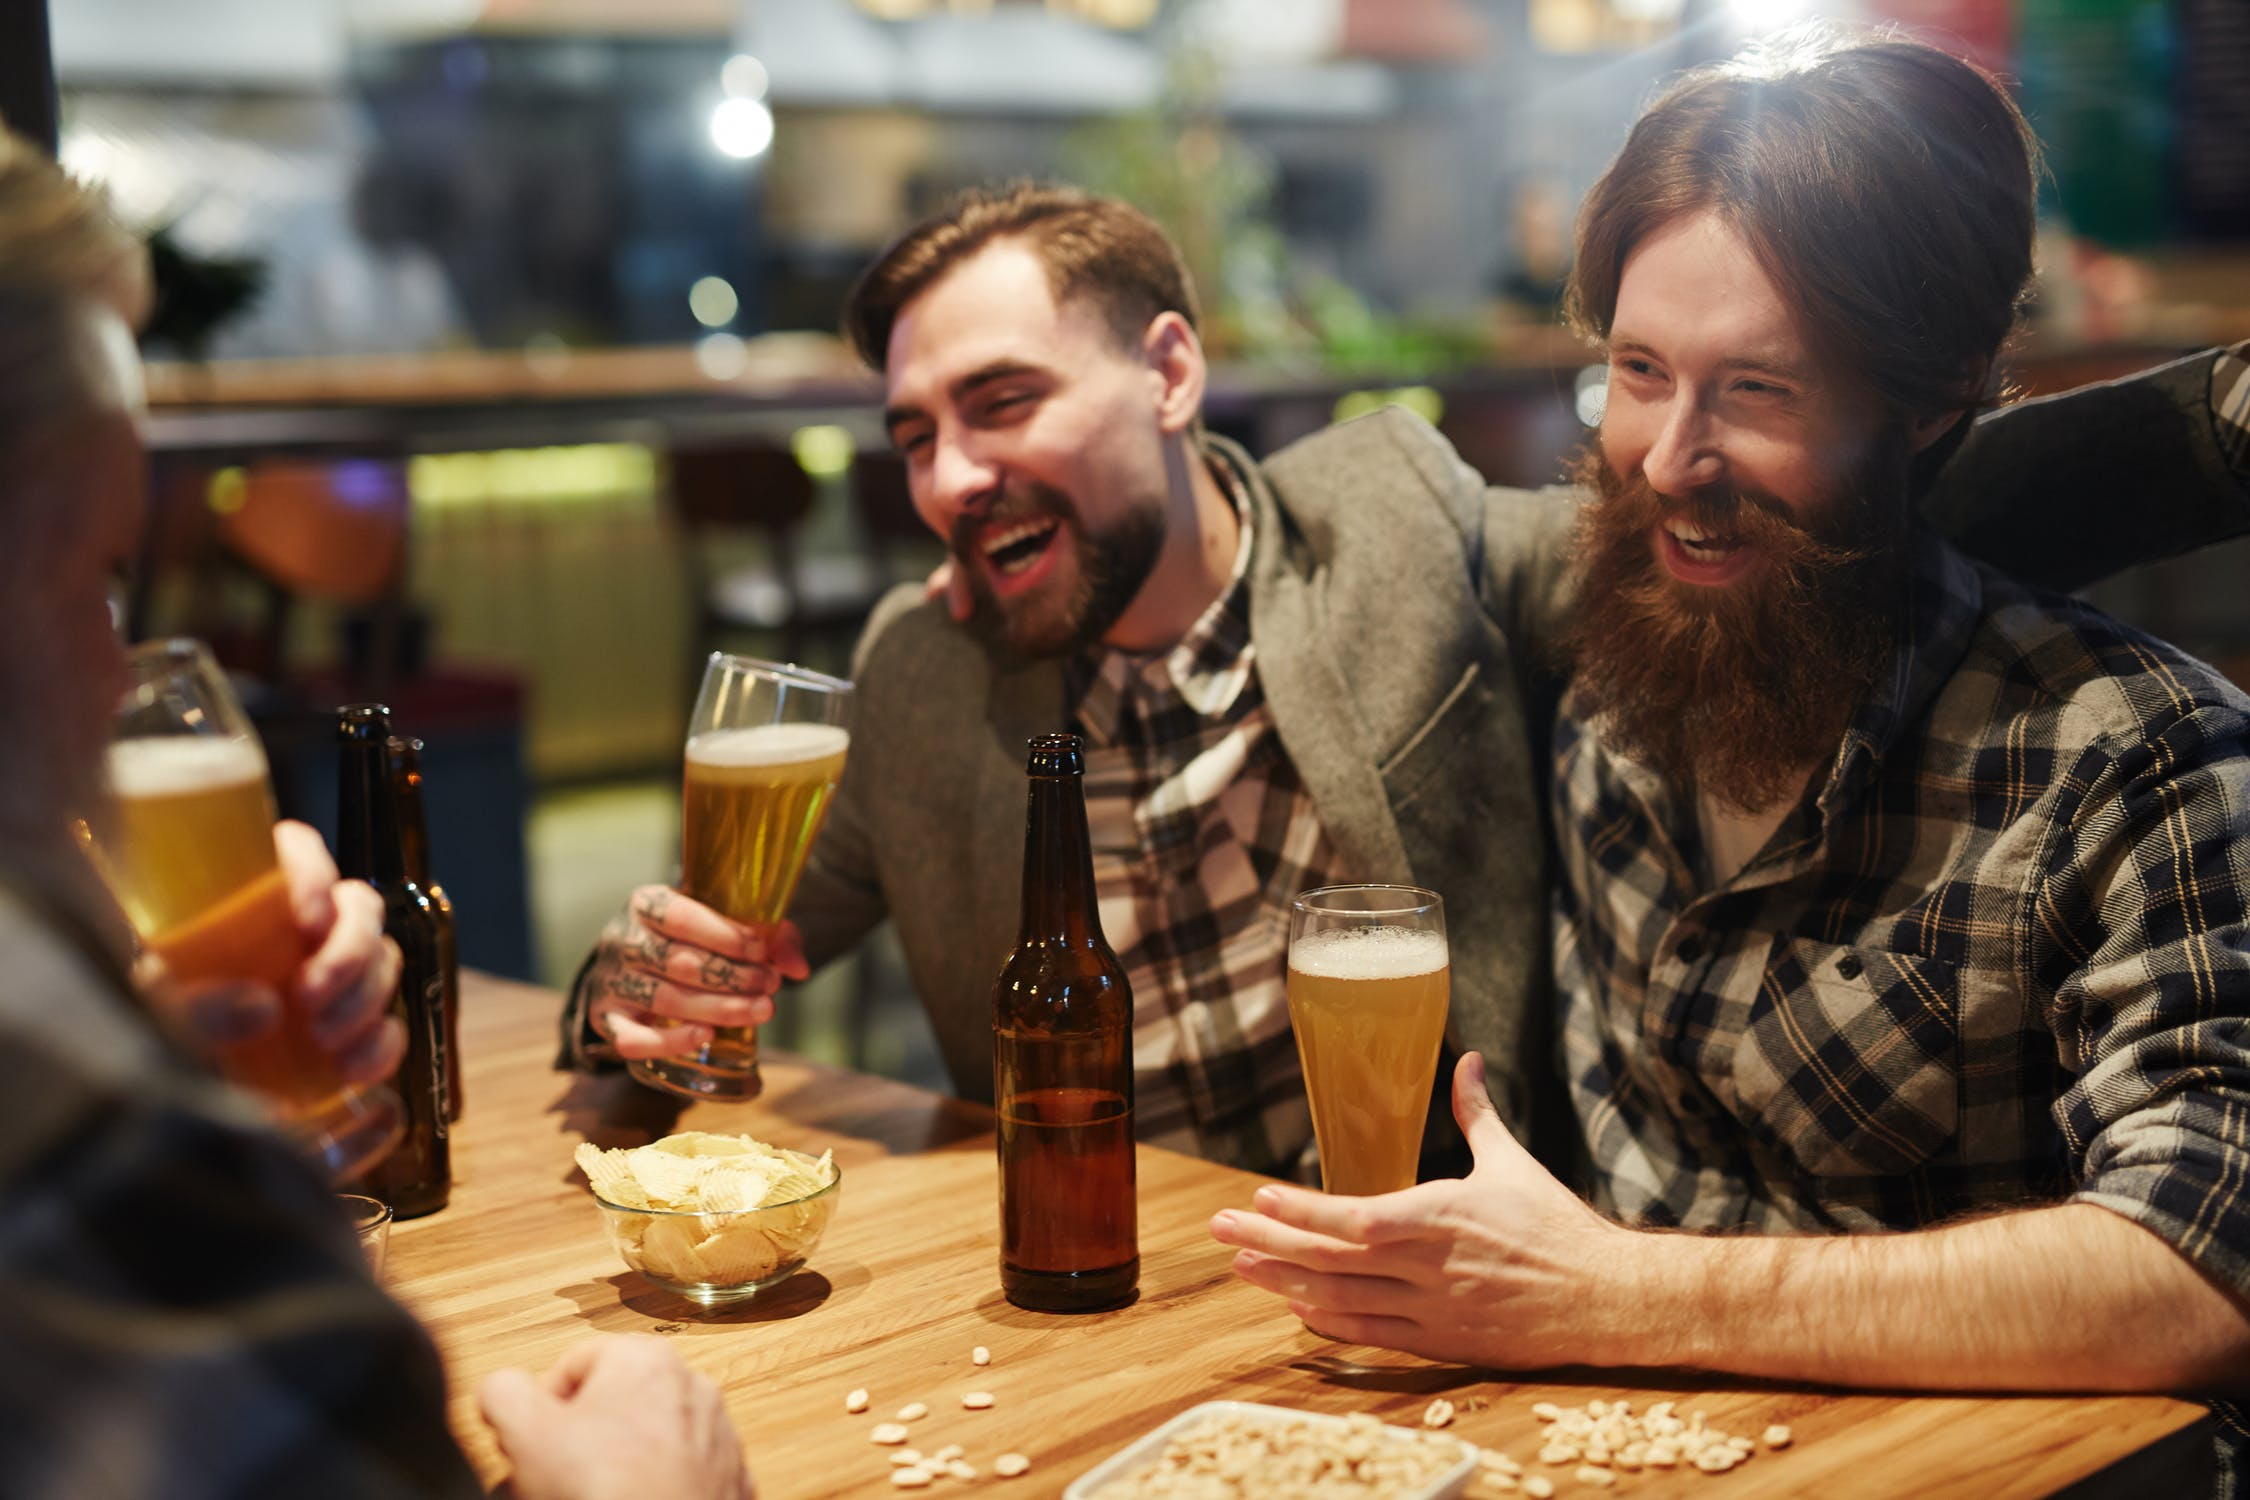 group of bearded men drinking beer and laughing, friends, moving on, good company